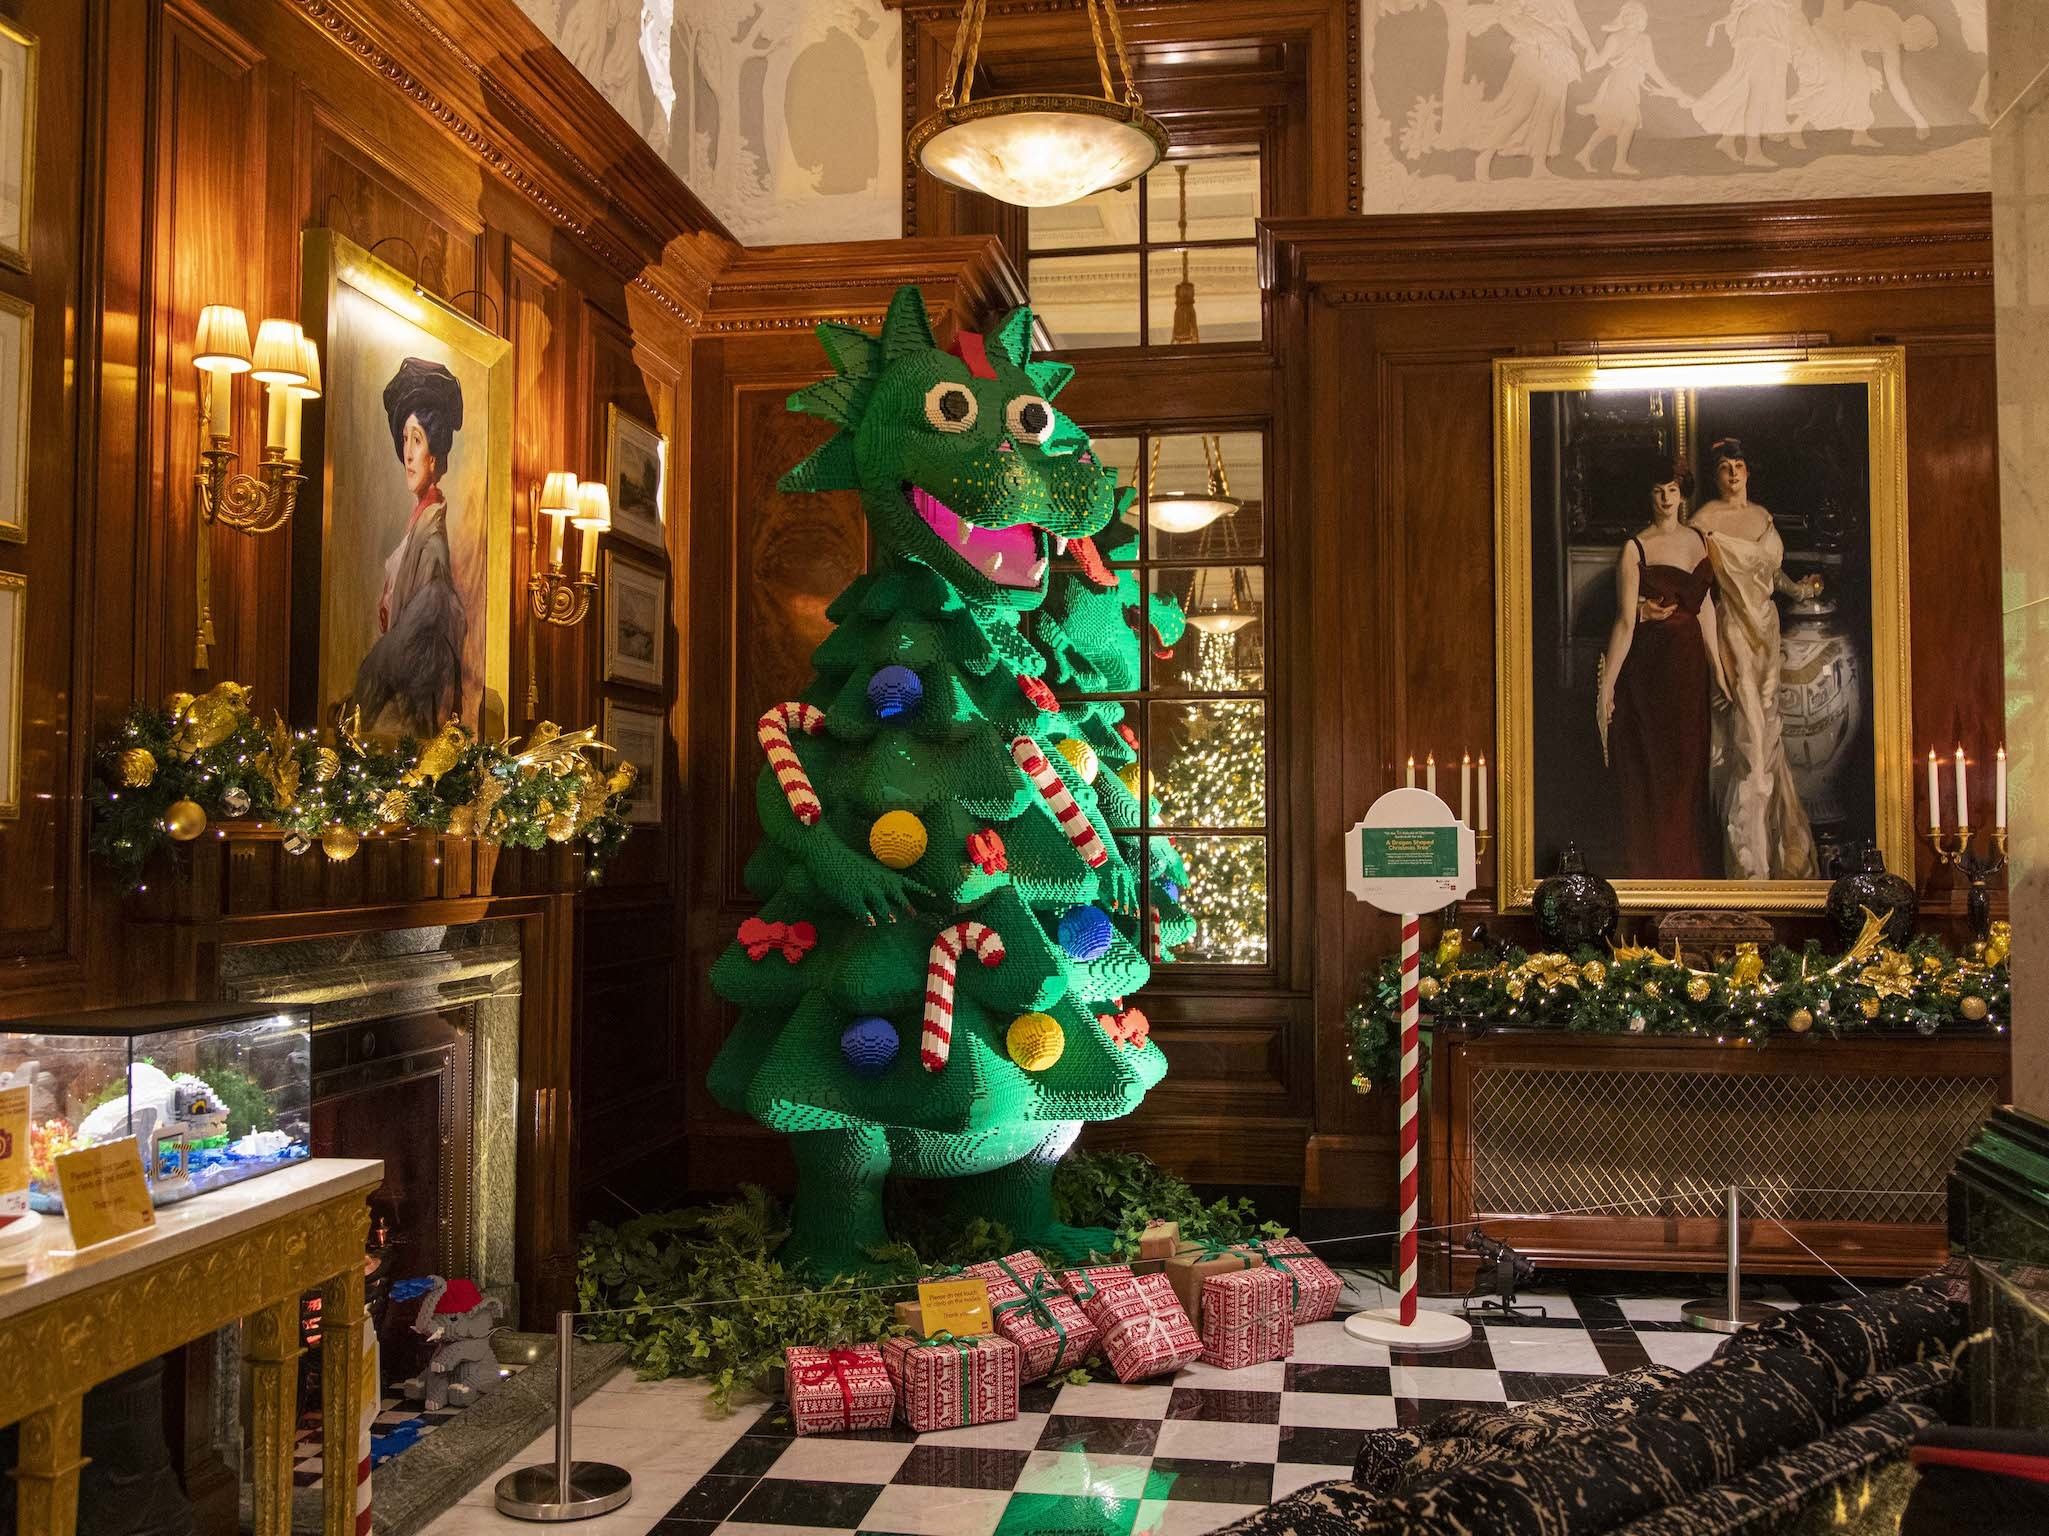 LEGO Christmas at the Savoy